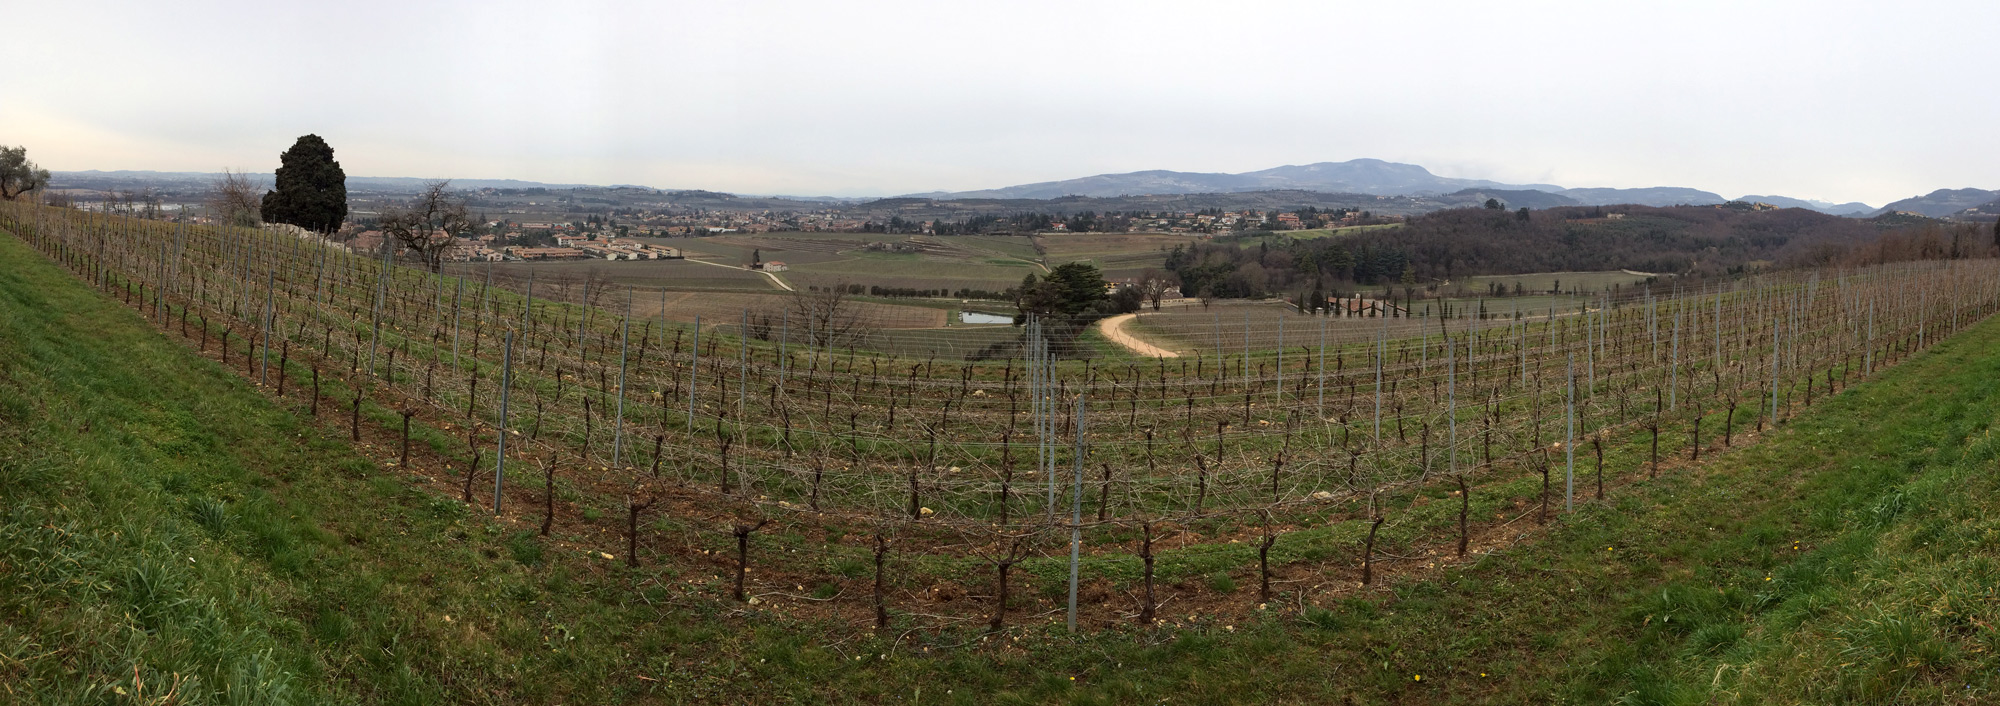 Looking west into the Negrar Valley in the Classico region of Amarone della Valpolicella - Vineyard photo by Wine Folly